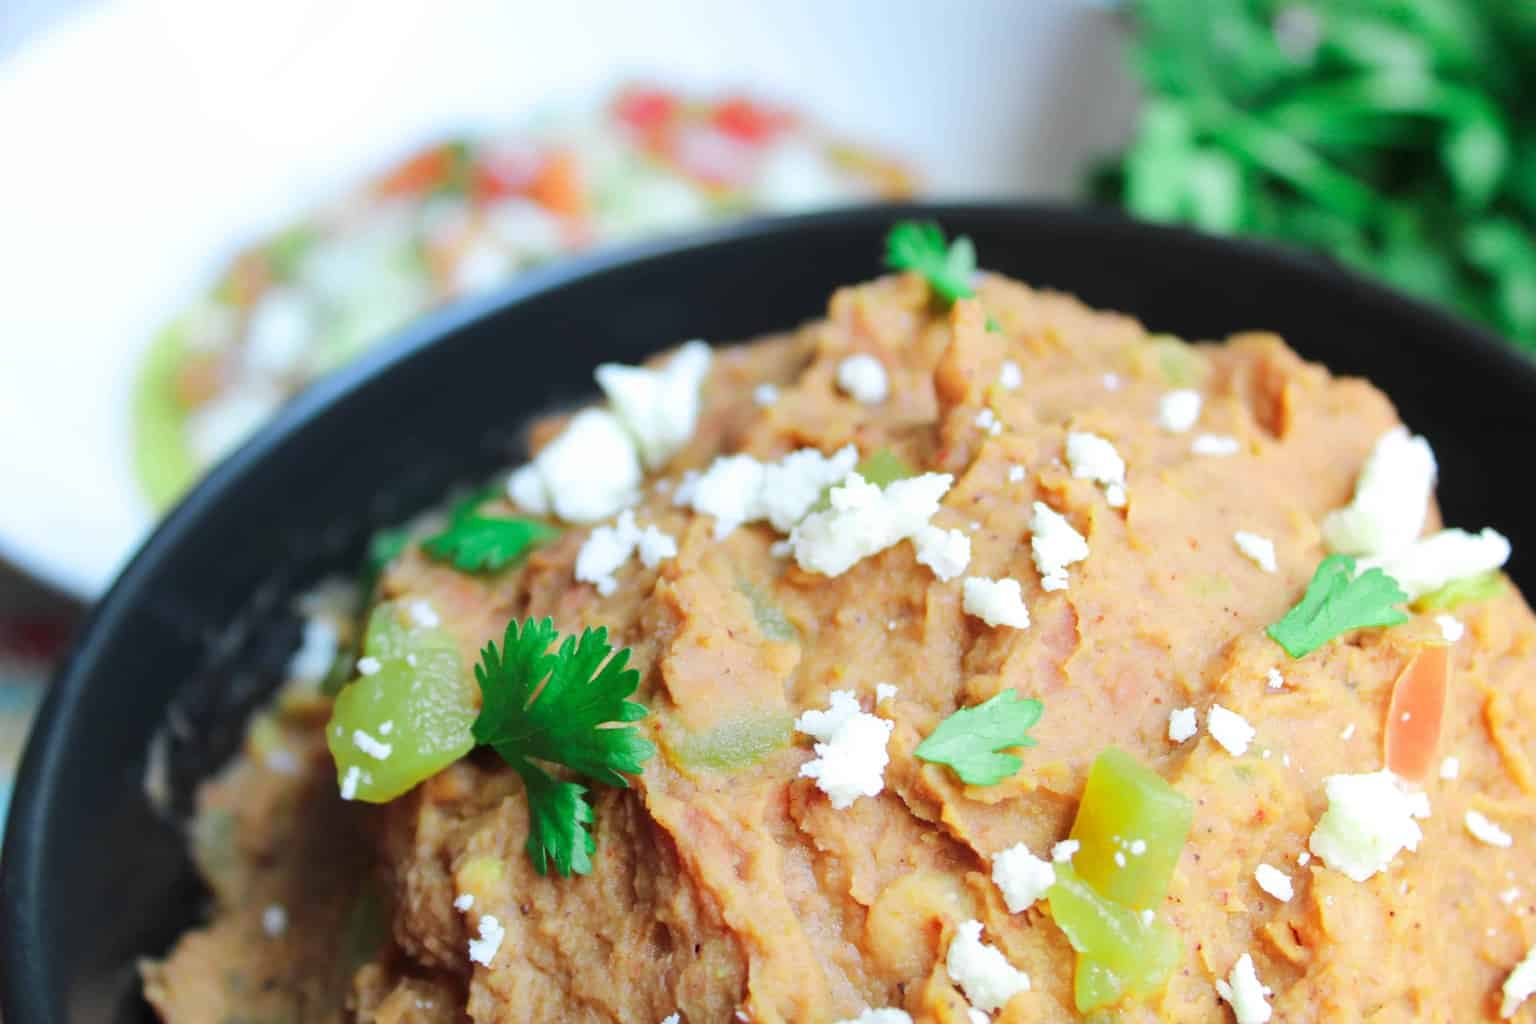 Restaurant Quality Canned Refried Beans